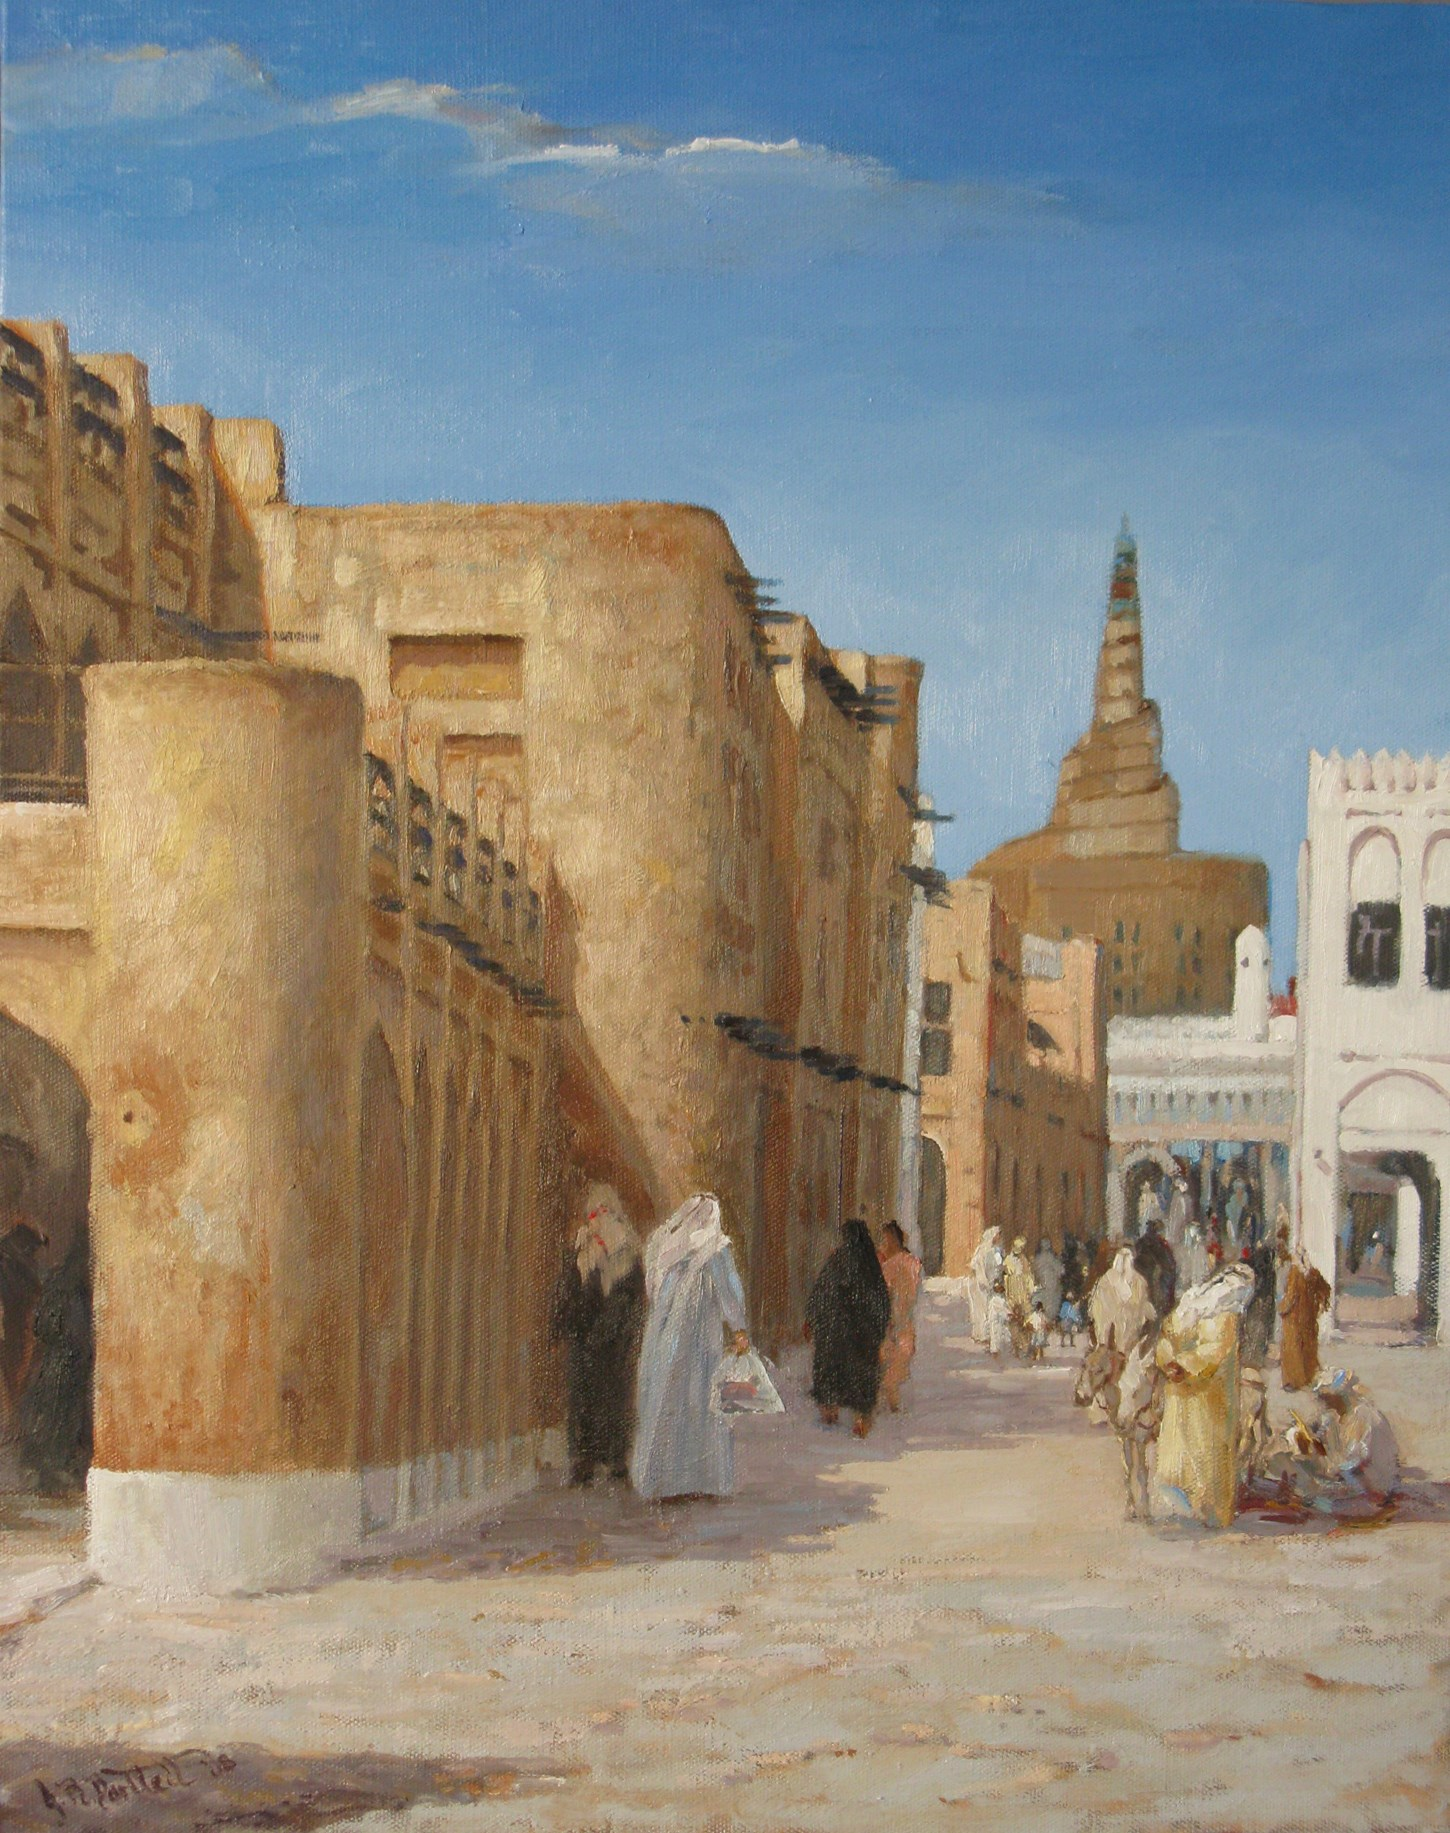 The Souk in Qatar